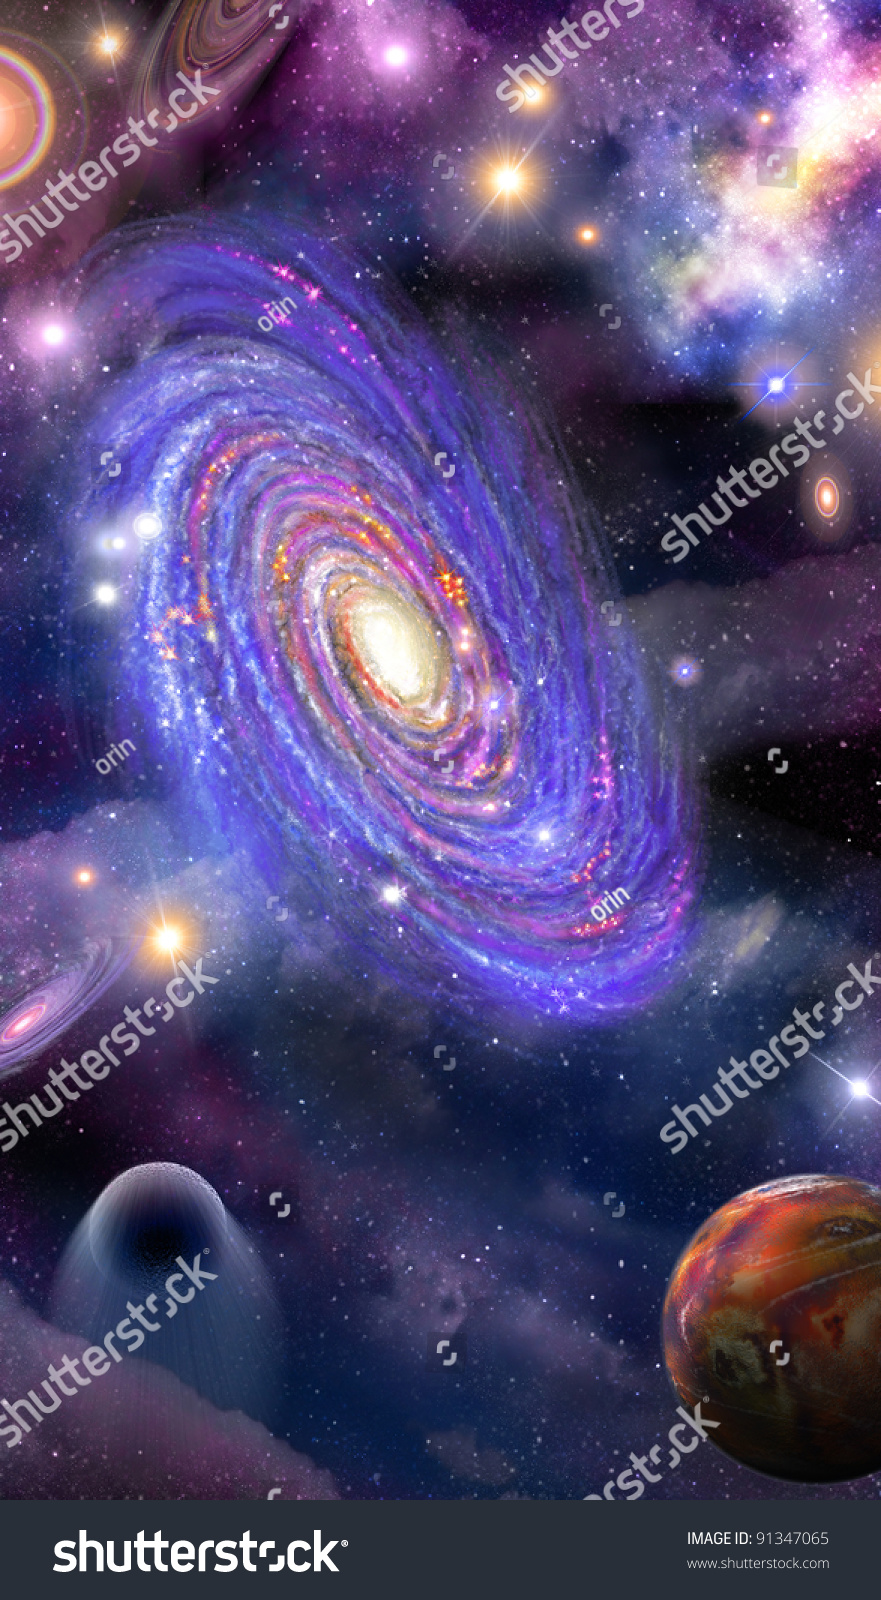 Spiral Galaxy Of Stars, Planets And Space Nebula Stock ...